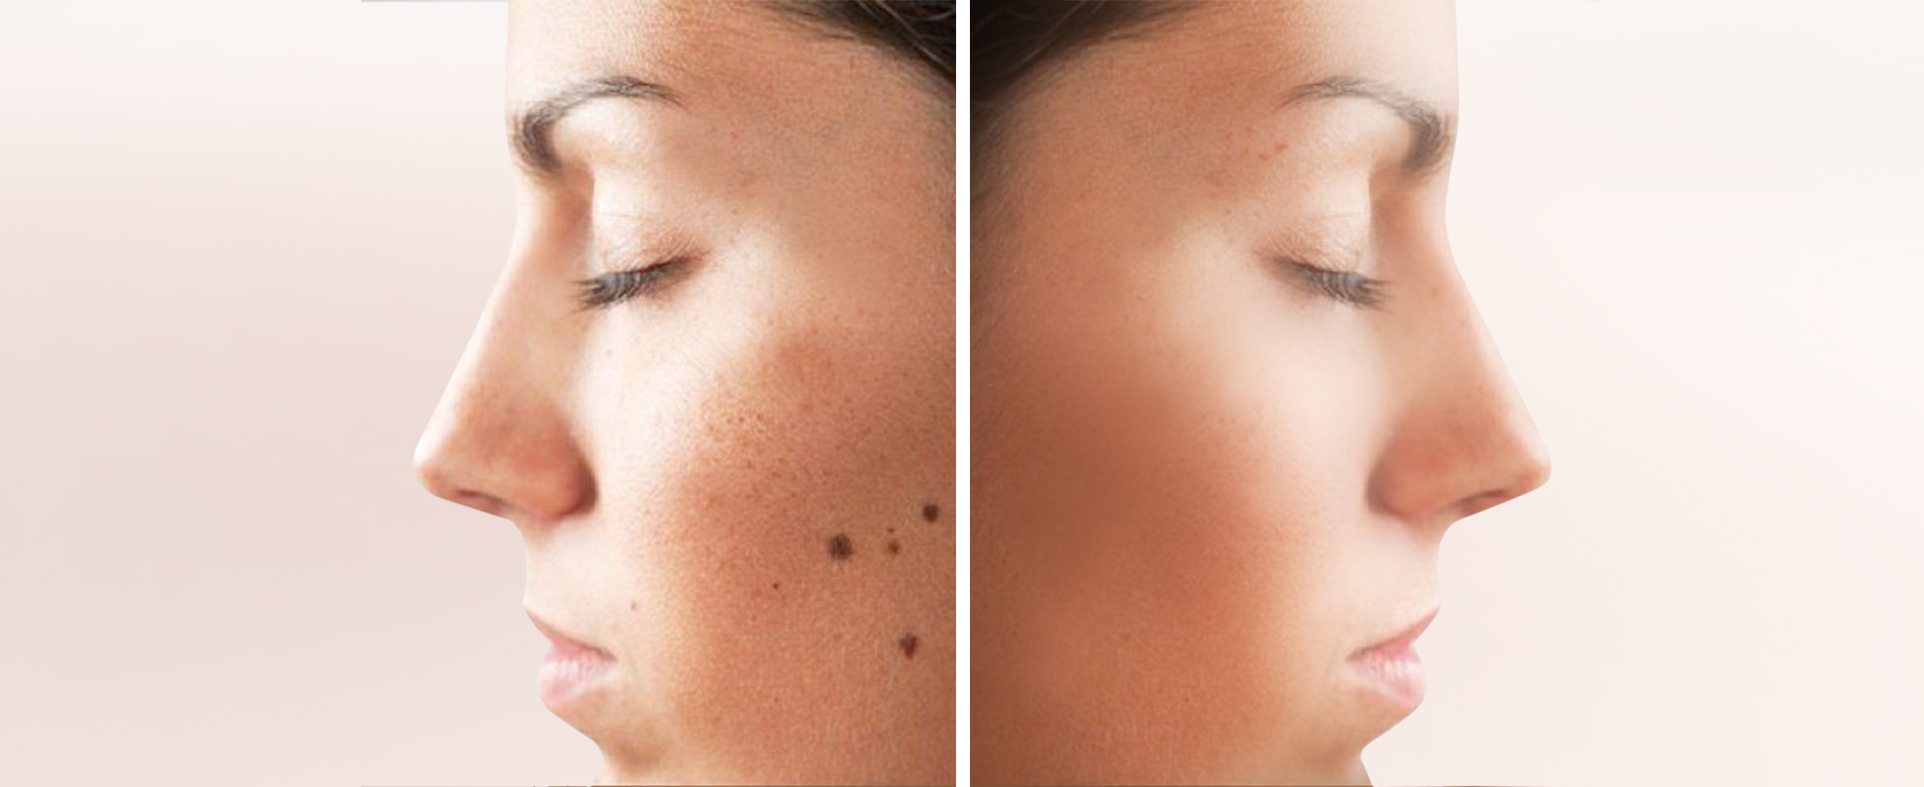 Laser Tattoo Removal Laser Mole Removal Treatment Skin